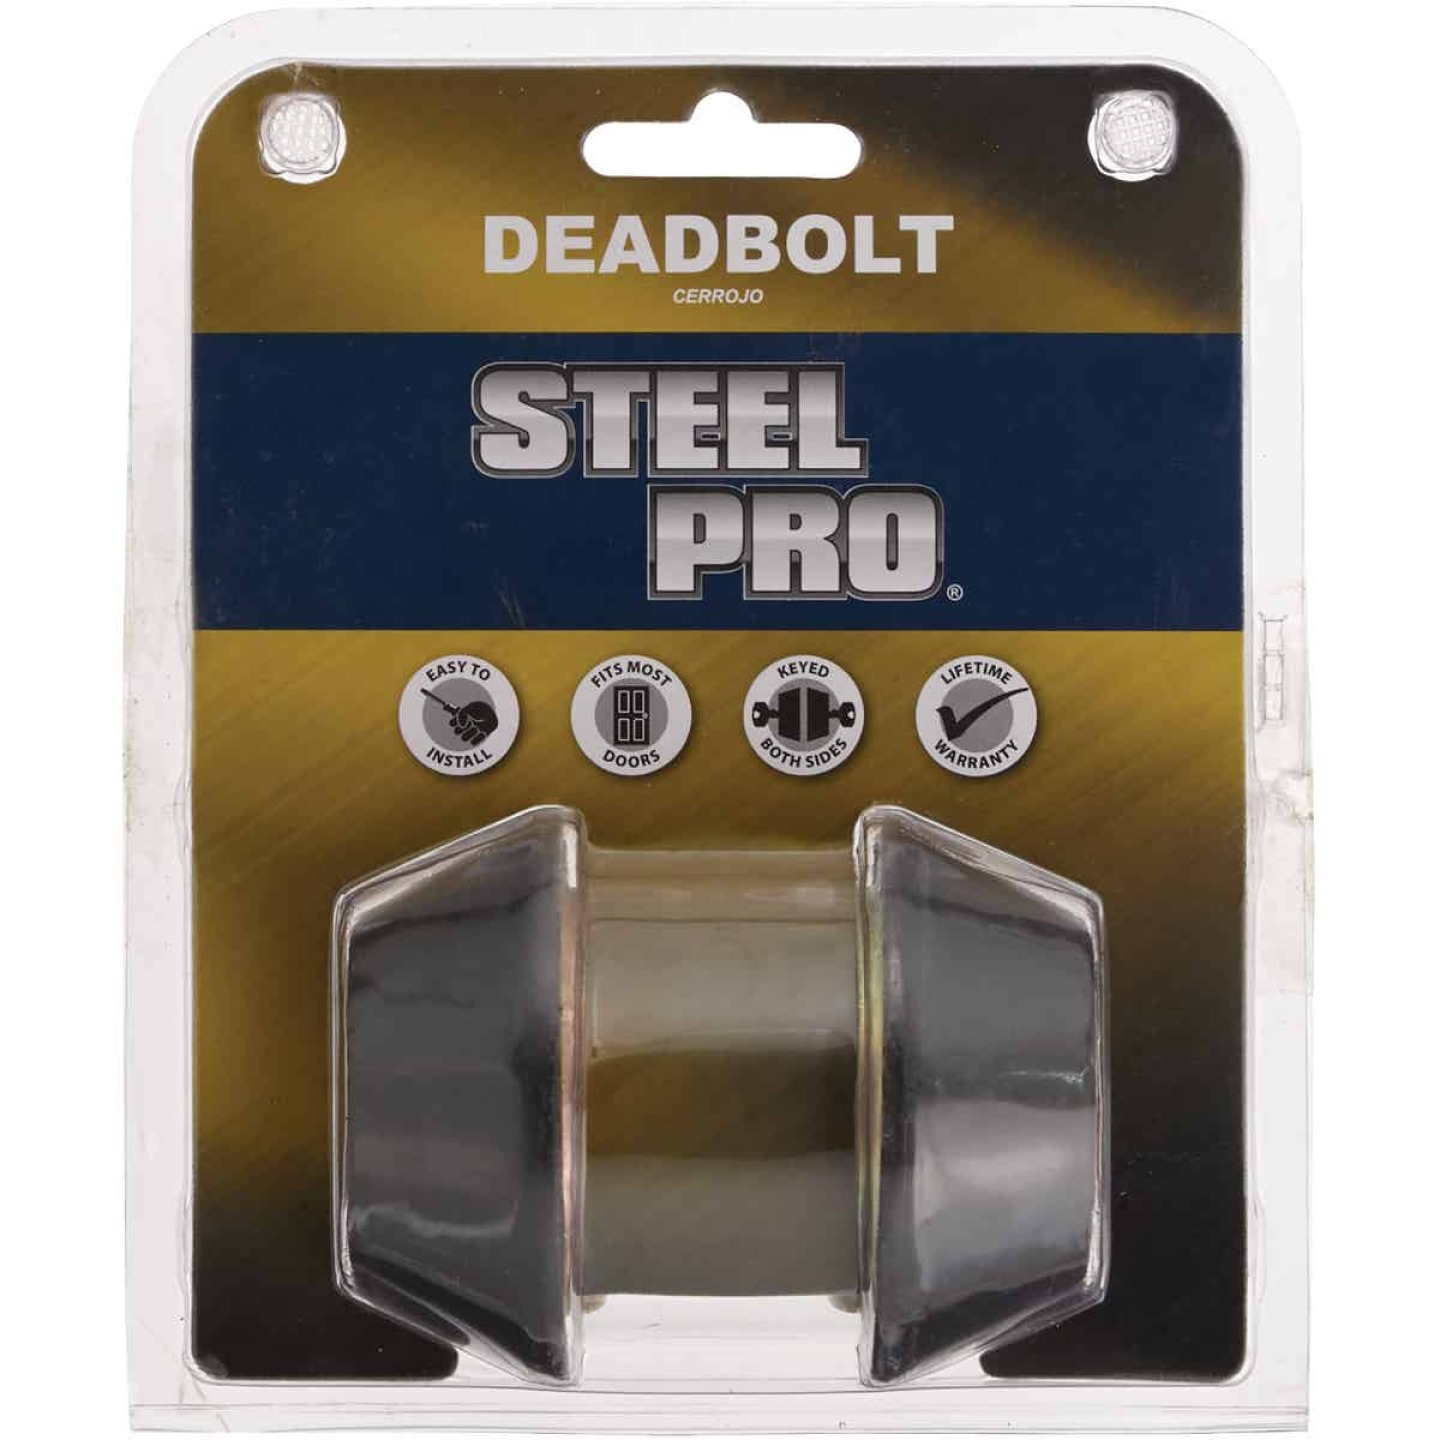 Steel Pro Oil Rubbed Bronze Kwikset Double Cylinder Deadbolt Image 2